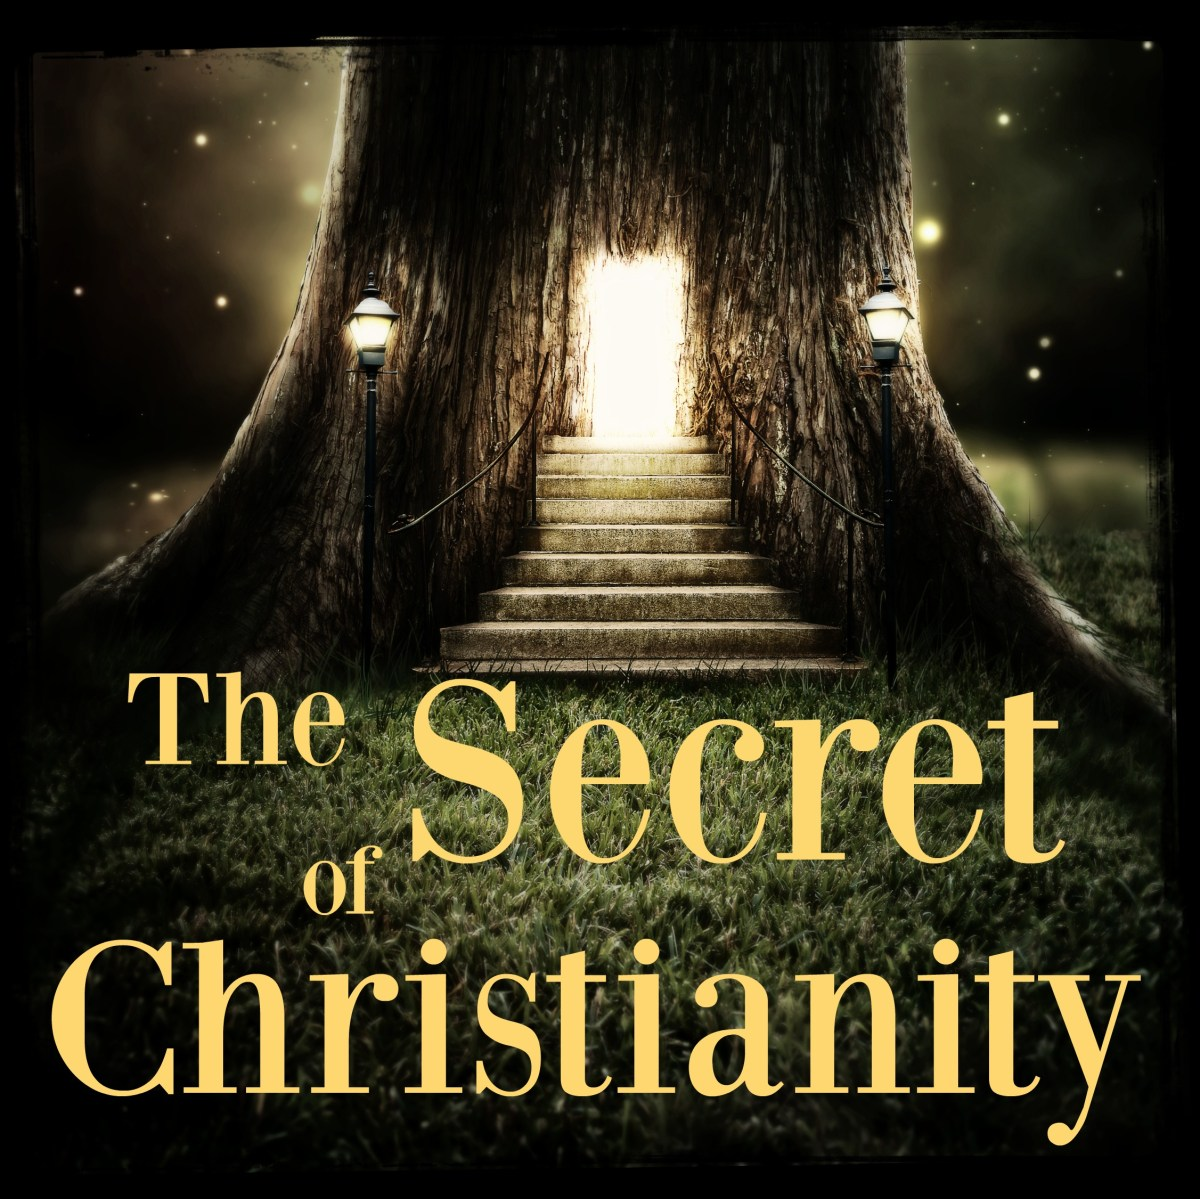 The Most Secret and Surprising Fact about Christianity!